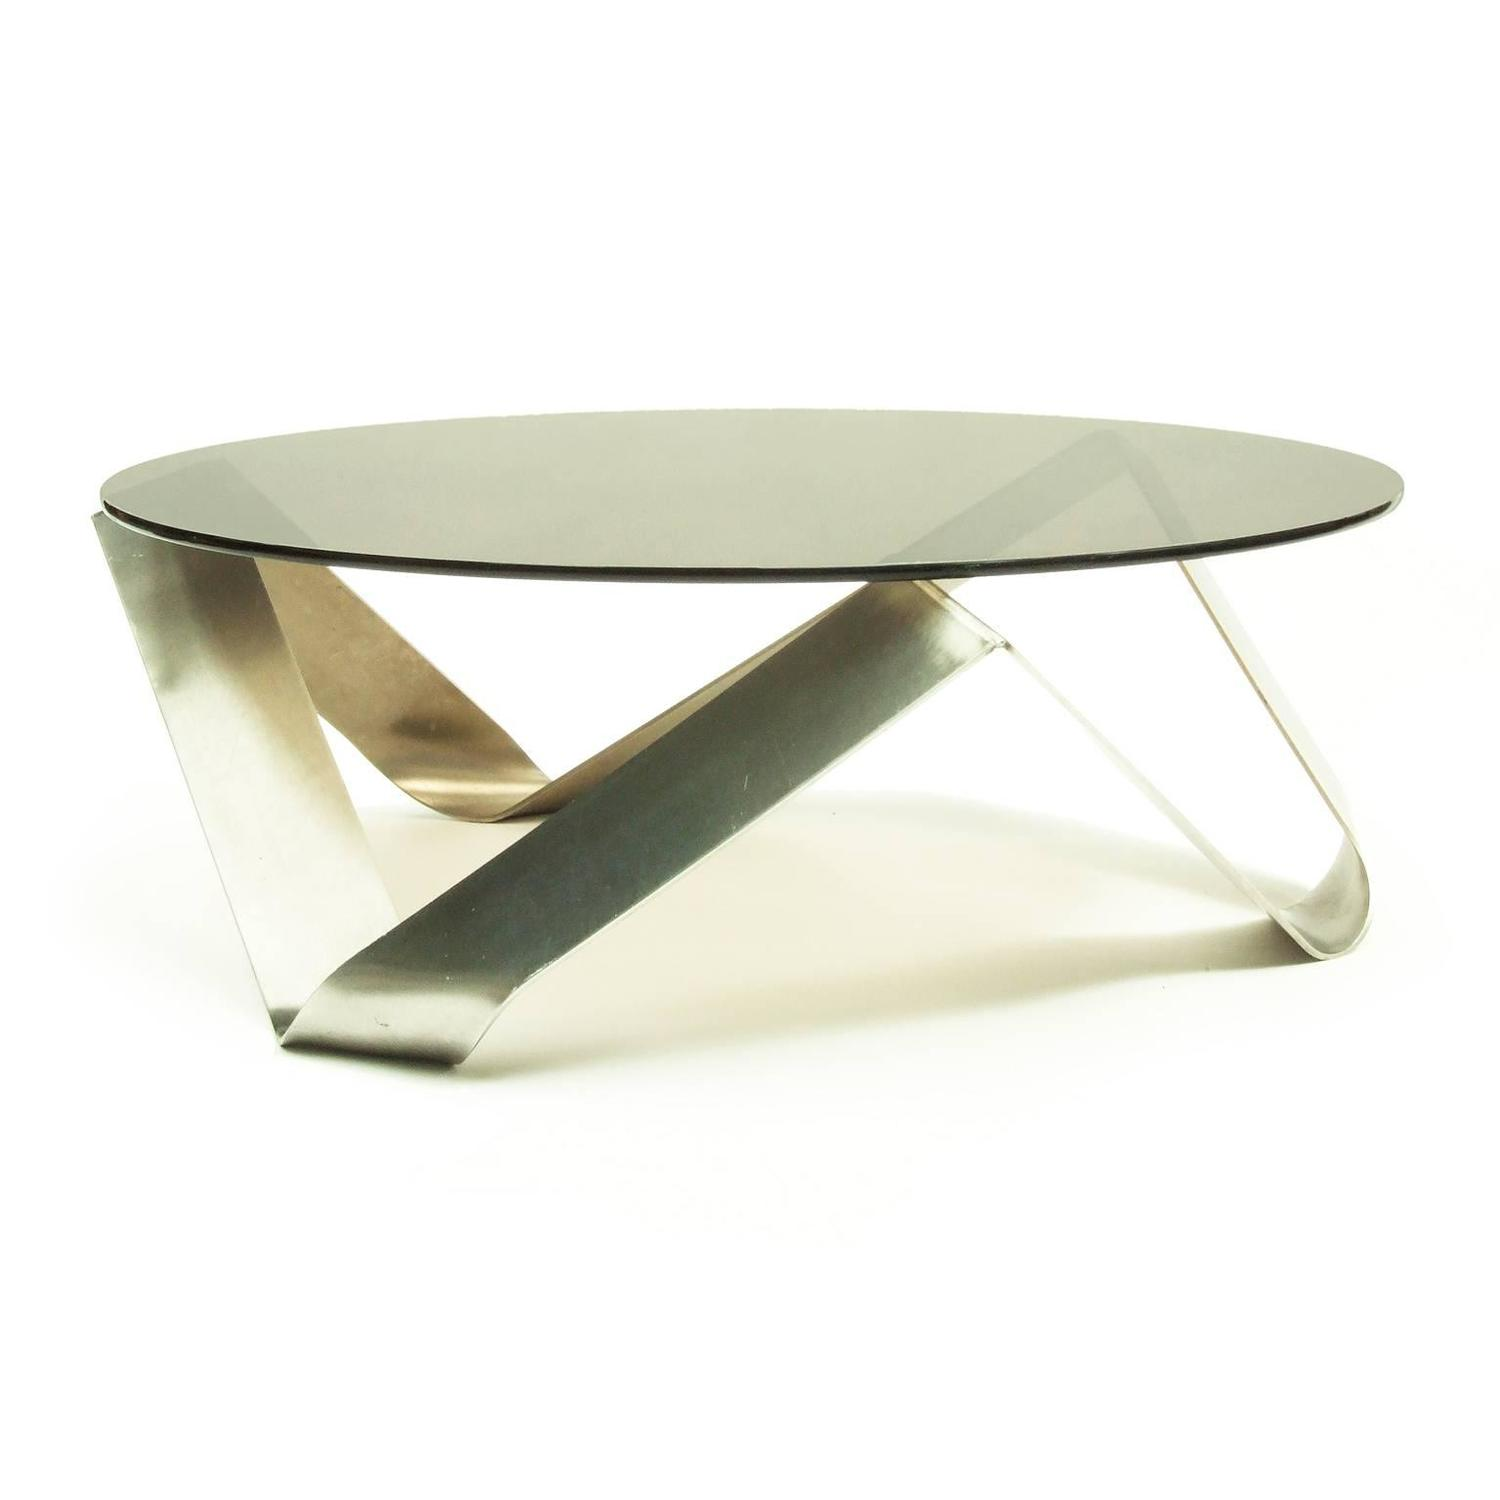 1970s French Bent Steel And Glass Coffee Table In The Style Of Monnet For Sale At 1stdibs